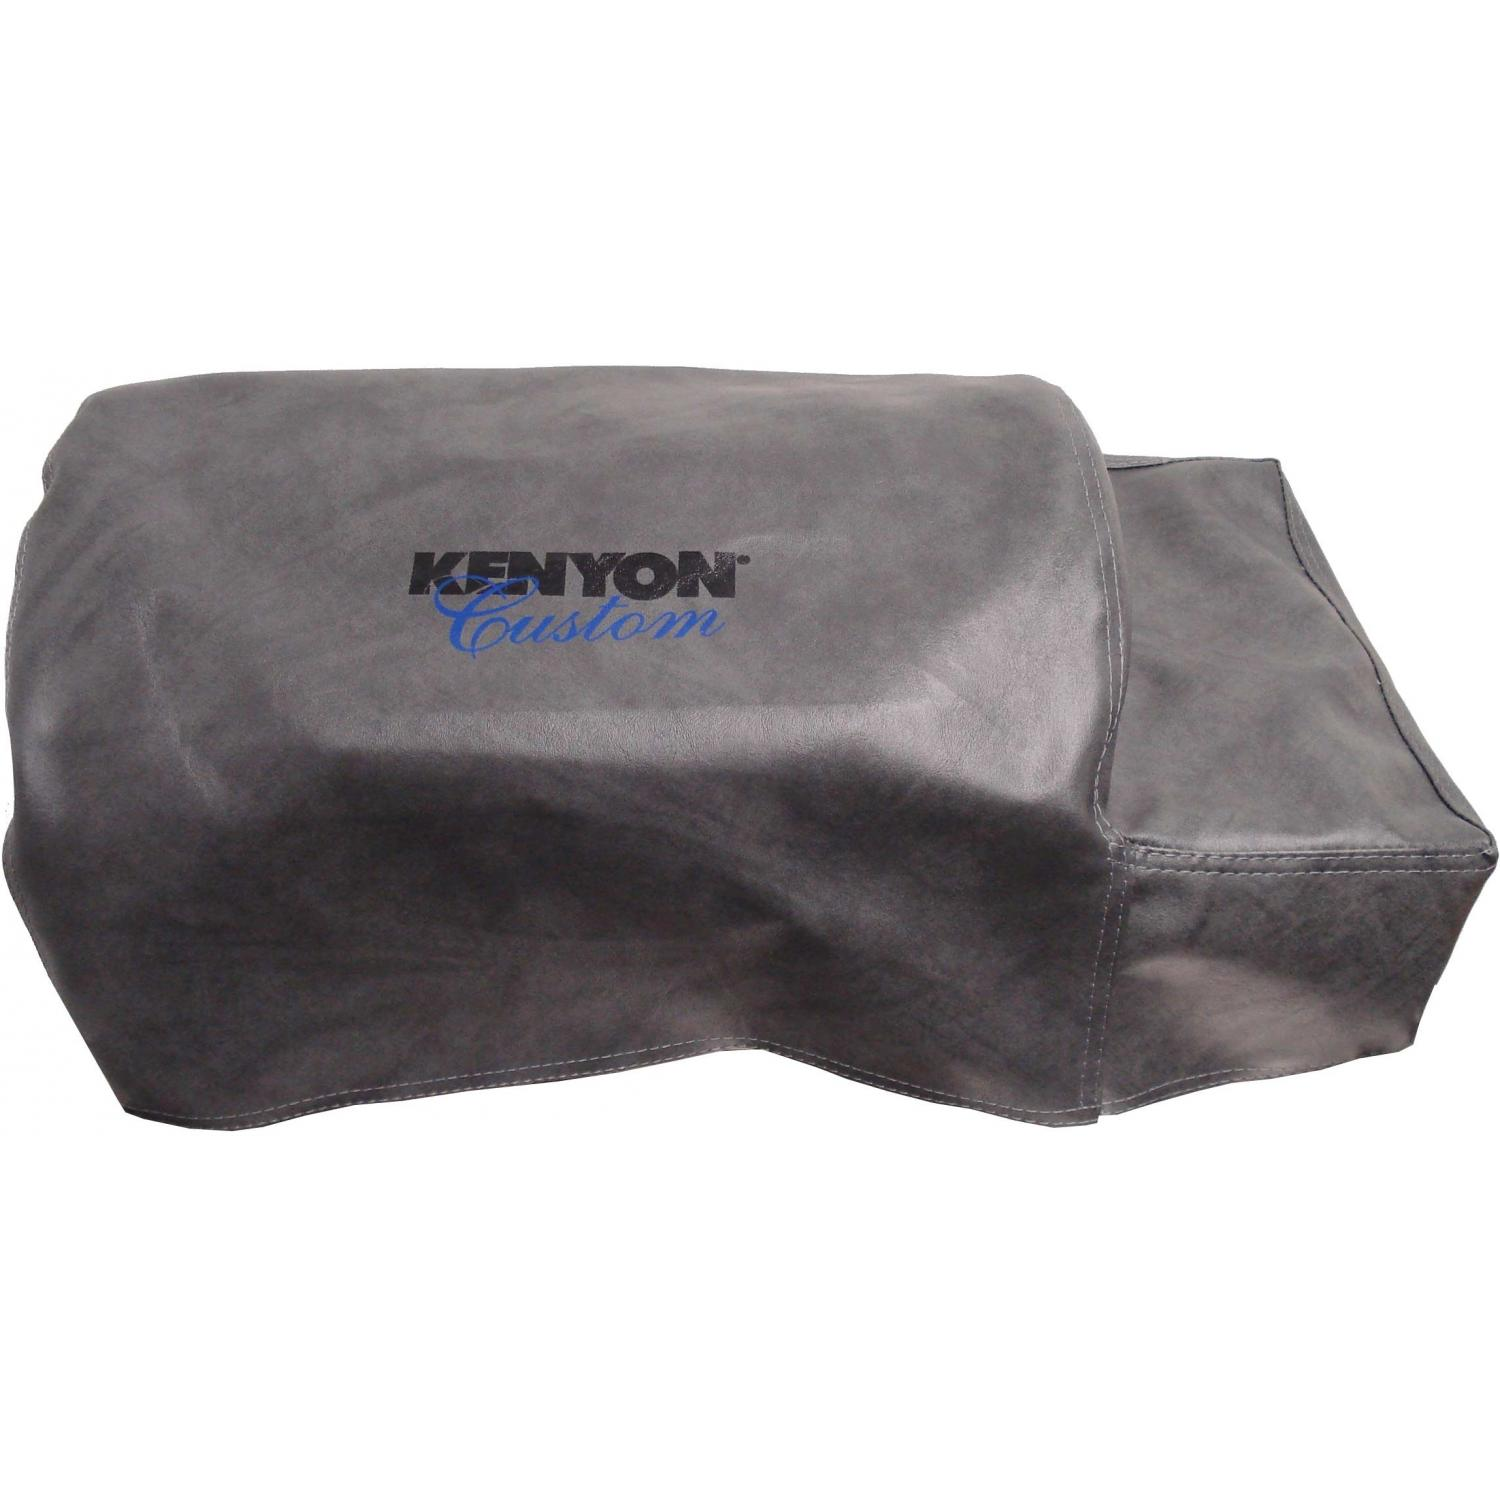 Portable Gas Grill Covers